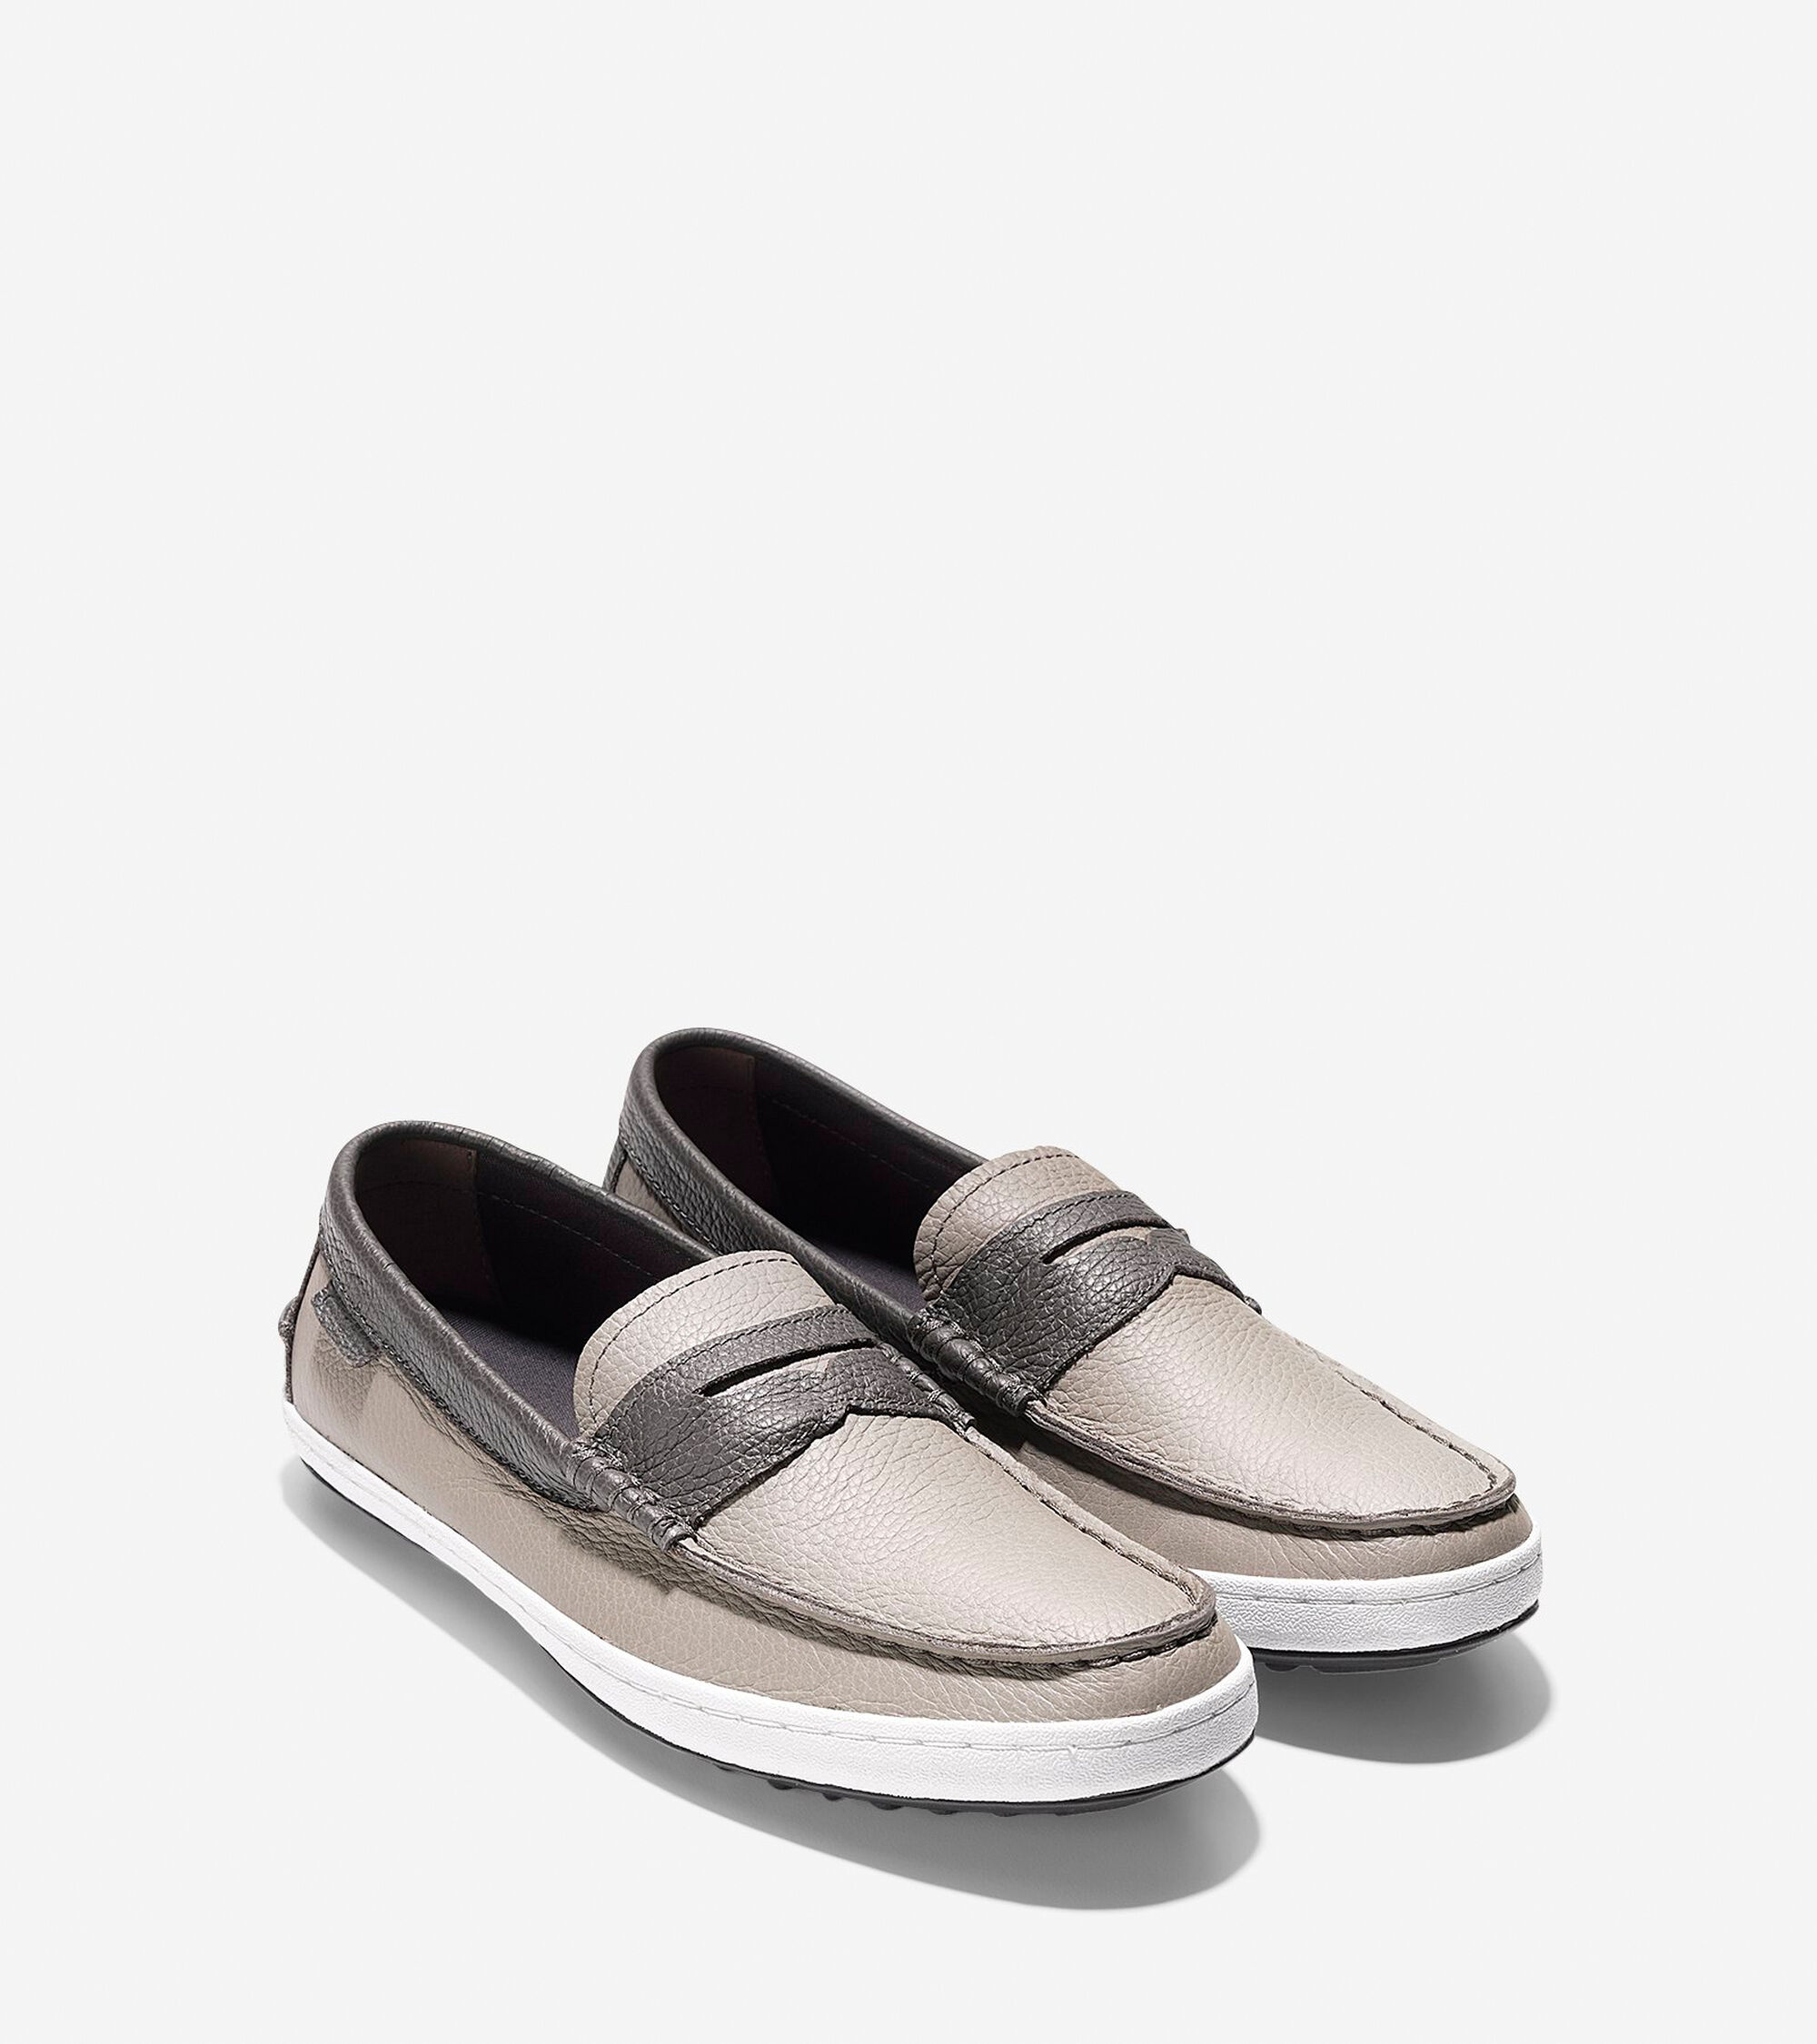 b74404cf737 Men s Pinch Weekender Road Trip Penny Loafers in Ironstone